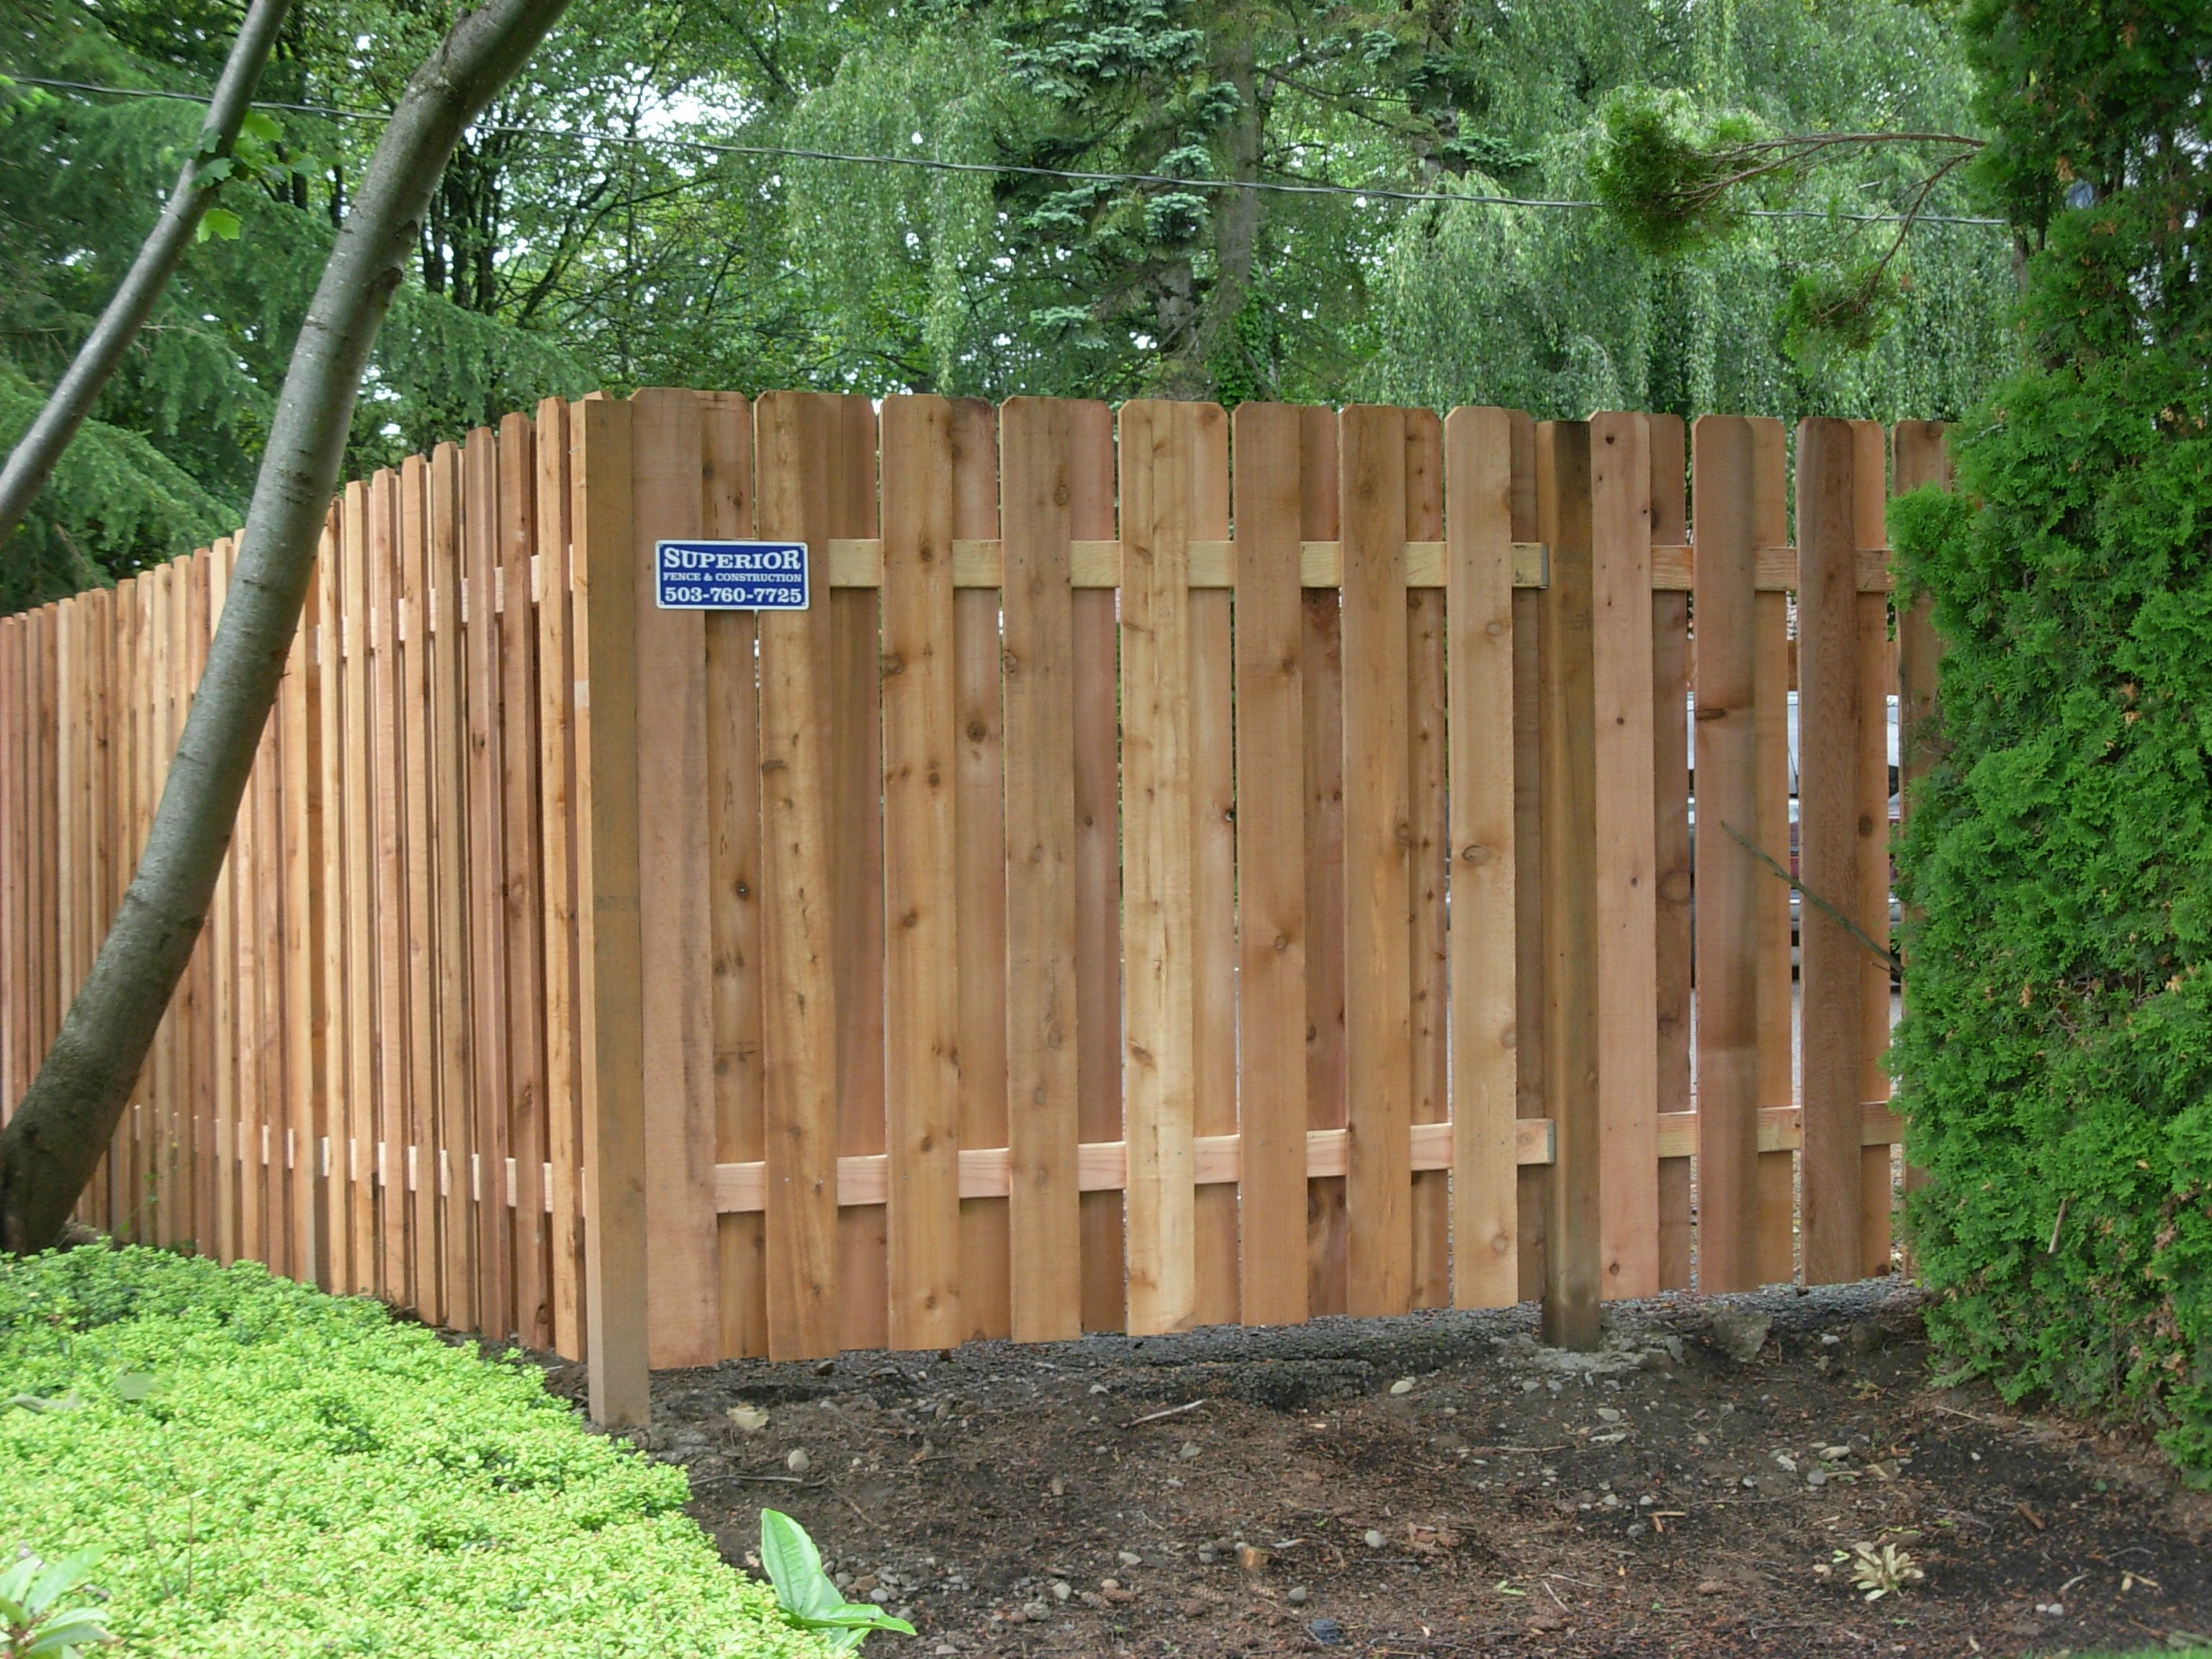 Alternating Boards Wood Fence 503 760 7725 With Images Good